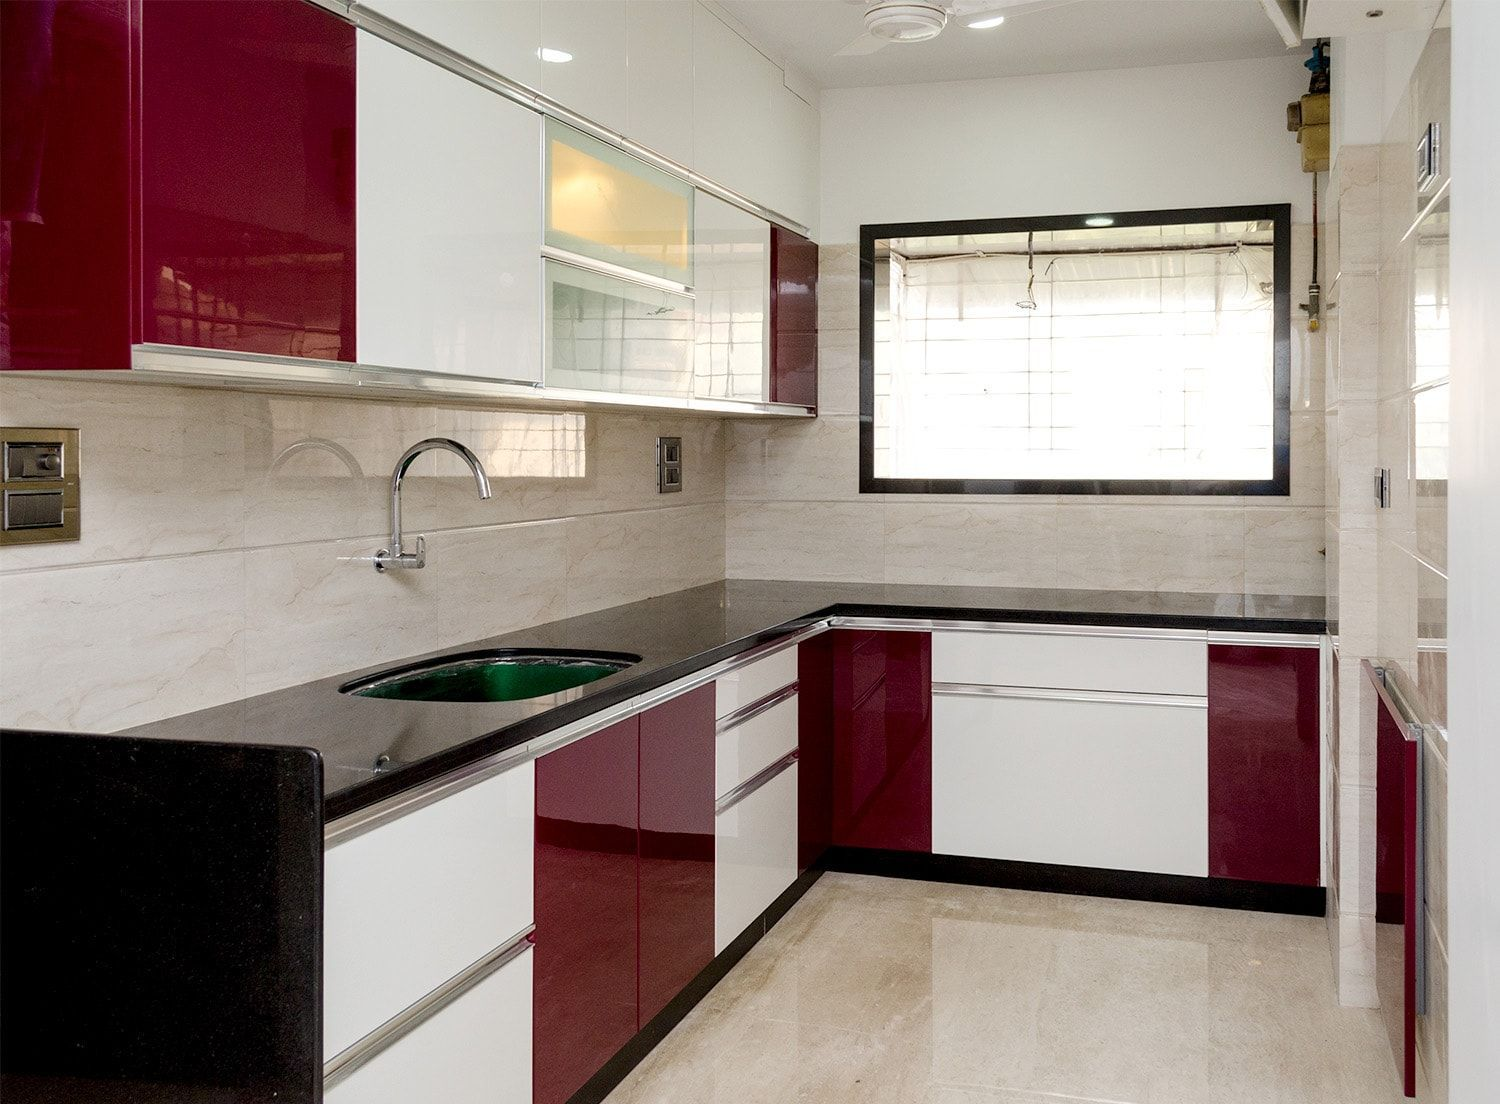 Why modular kitchen designs are the latest trend in home decor